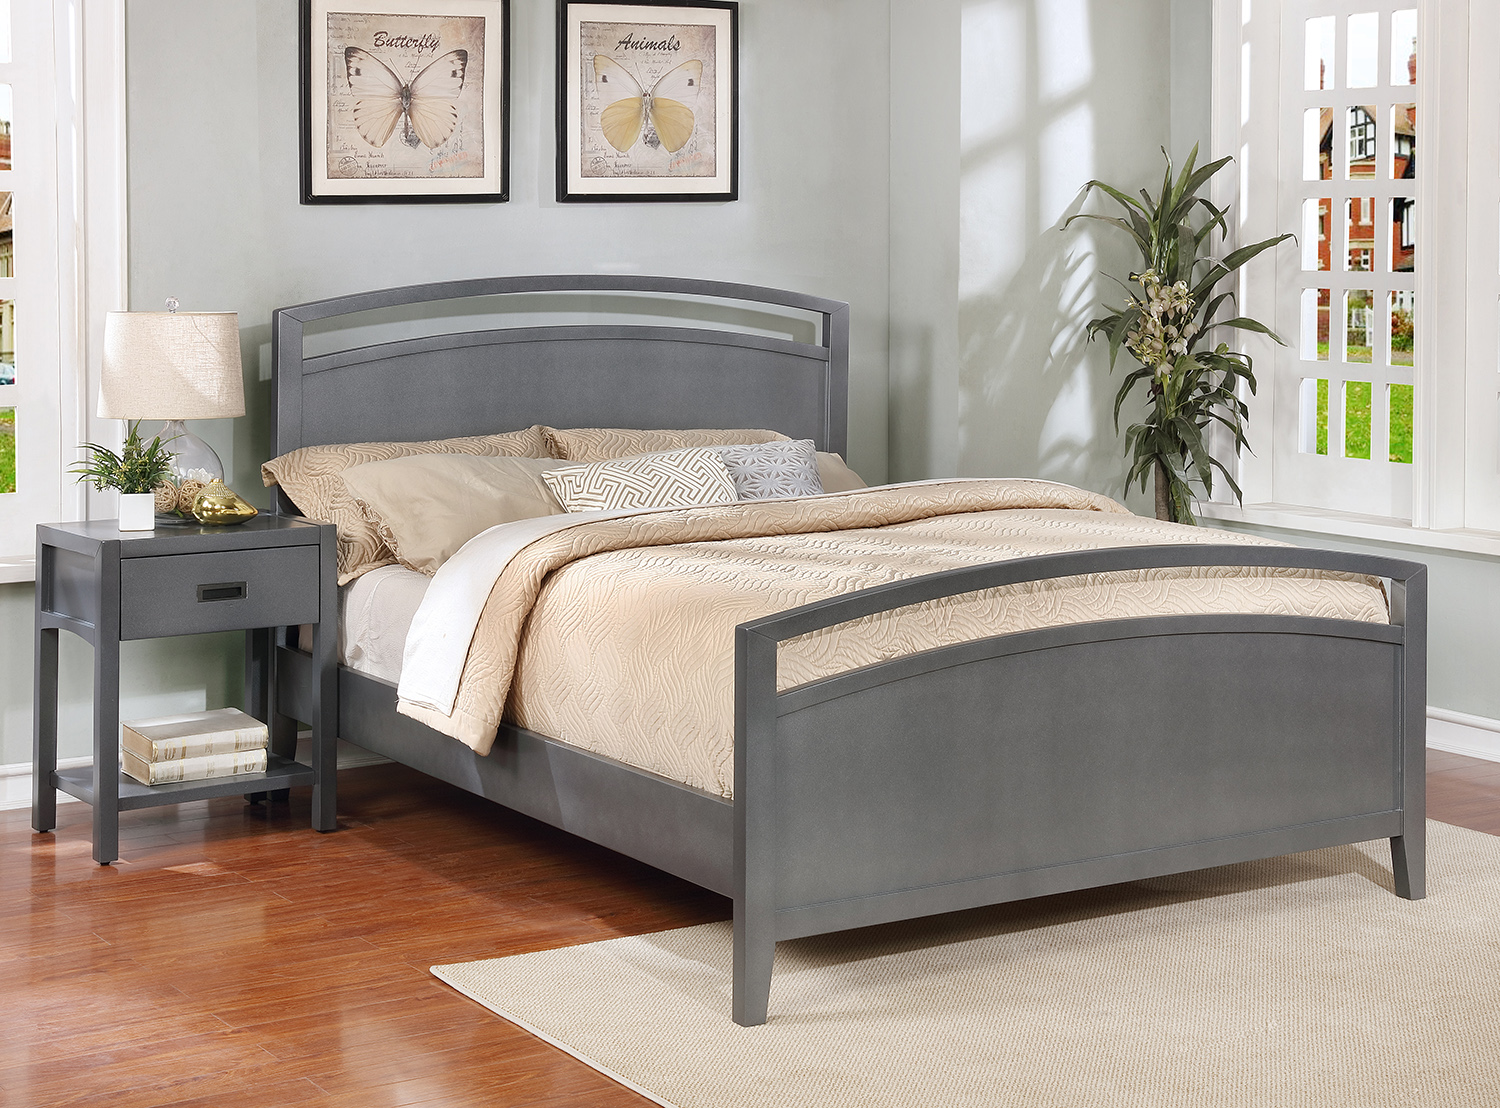 Reisa Platform Bed - Queen, Flat Grey